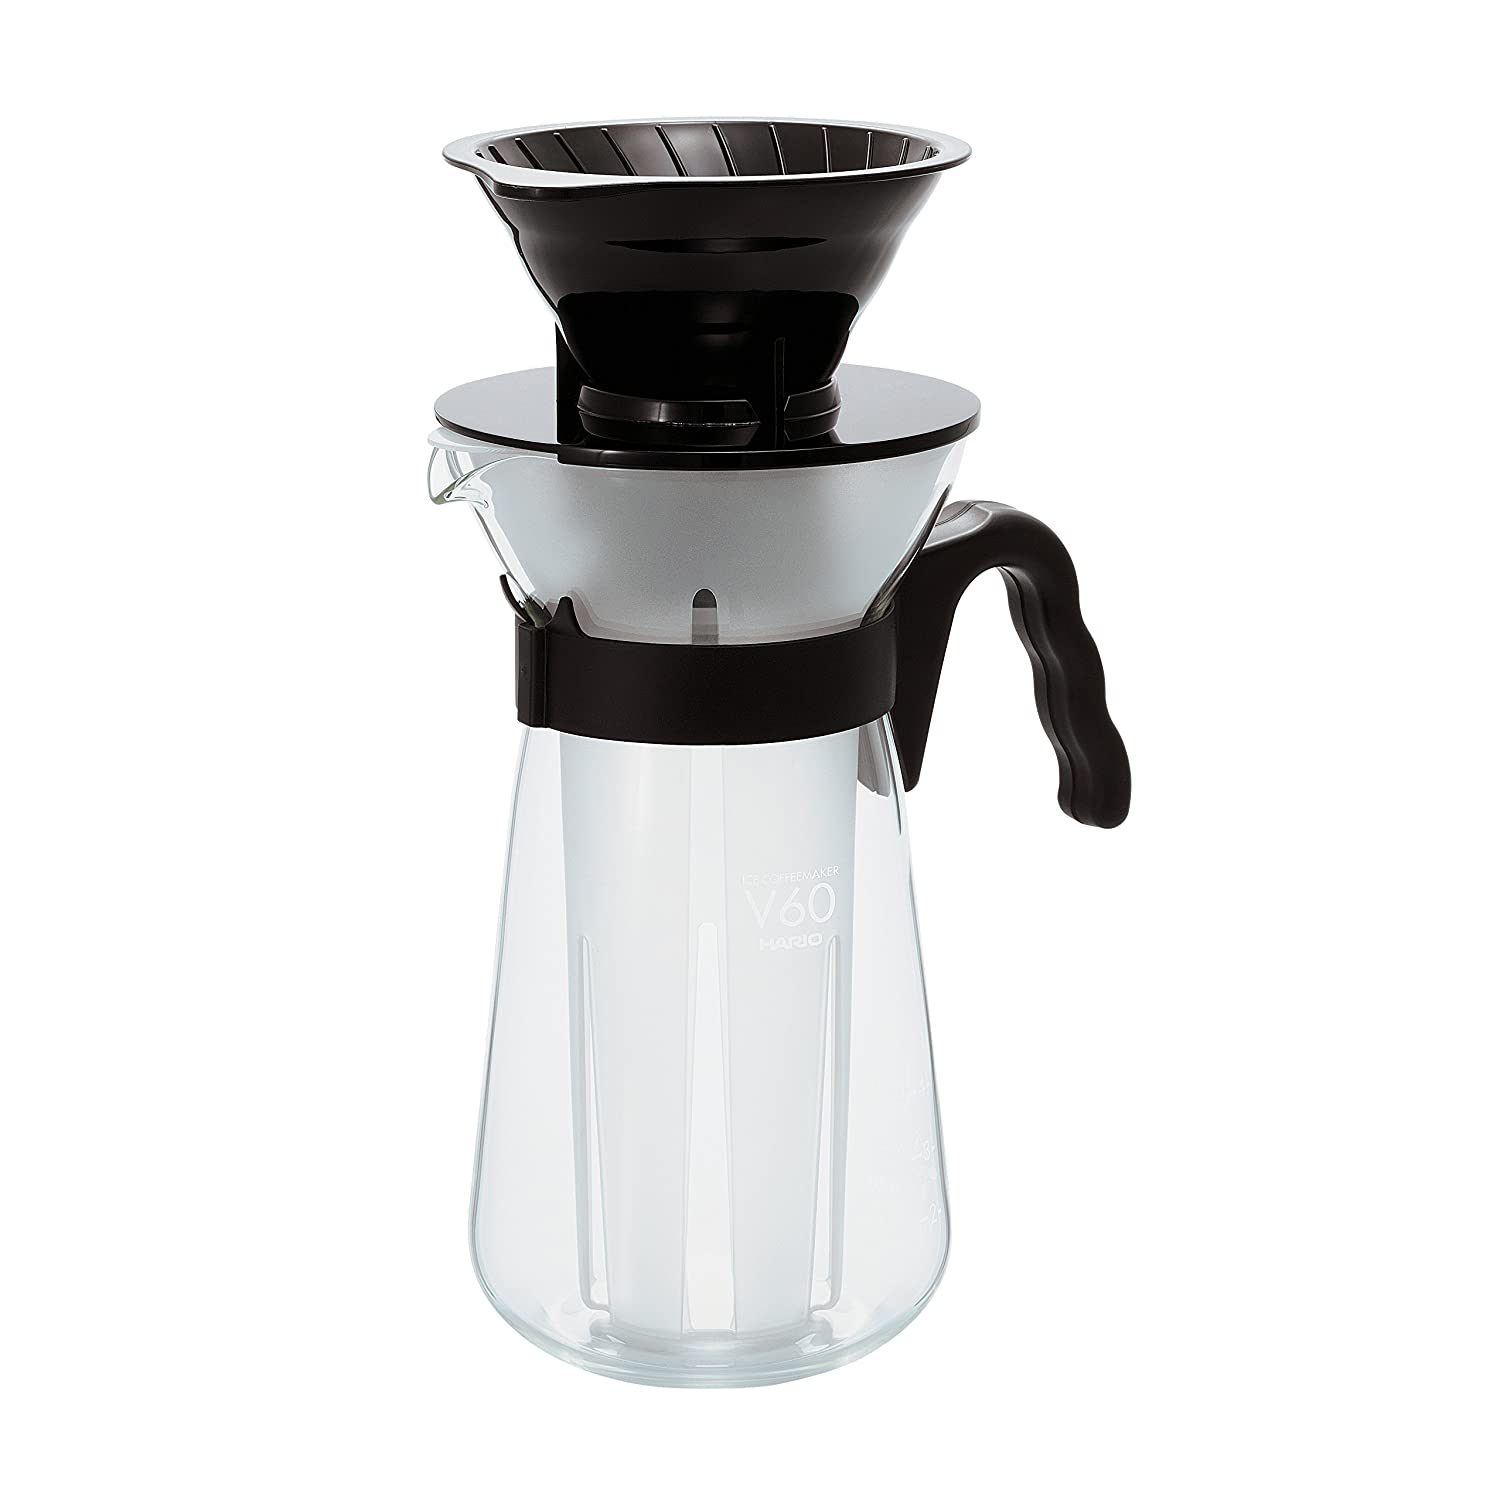 Hario V60 Fretta Ice Coffee Maker Black VIC-02B